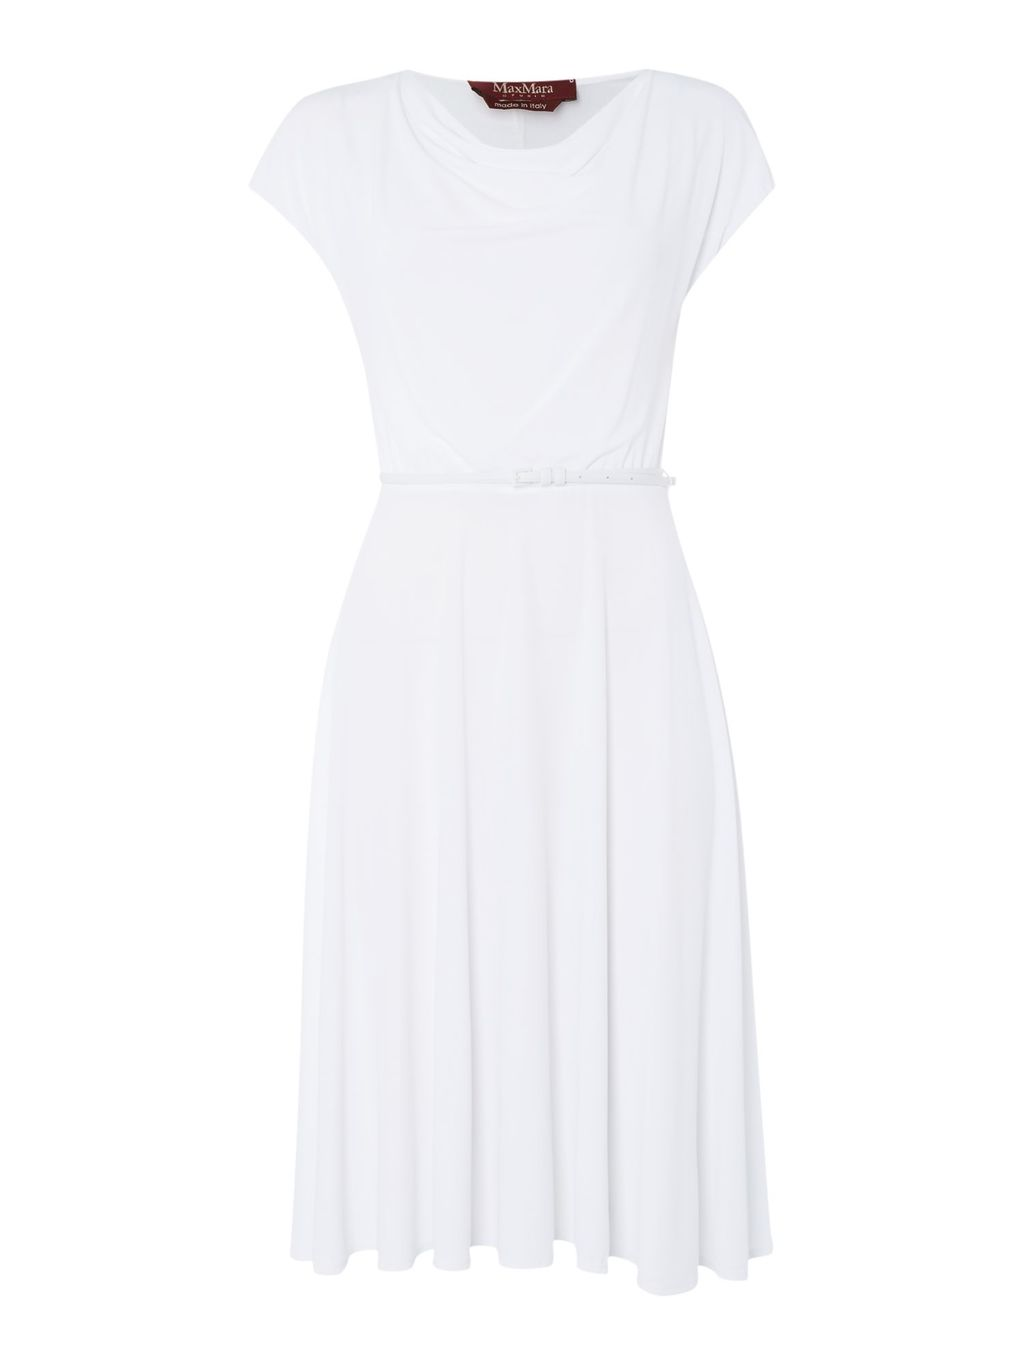 Decano Jersey Dress With Belt, White - style: shift; neckline: cowl/draped neck; sleeve style: capped; fit: fitted at waist; pattern: plain; waist detail: belted waist/tie at waist/drawstring; predominant colour: white; occasions: casual, occasion, creative work; length: on the knee; fibres: viscose/rayon - stretch; sleeve length: short sleeve; pattern type: fabric; texture group: jersey - stretchy/drapey; season: s/s 2016; wardrobe: basic